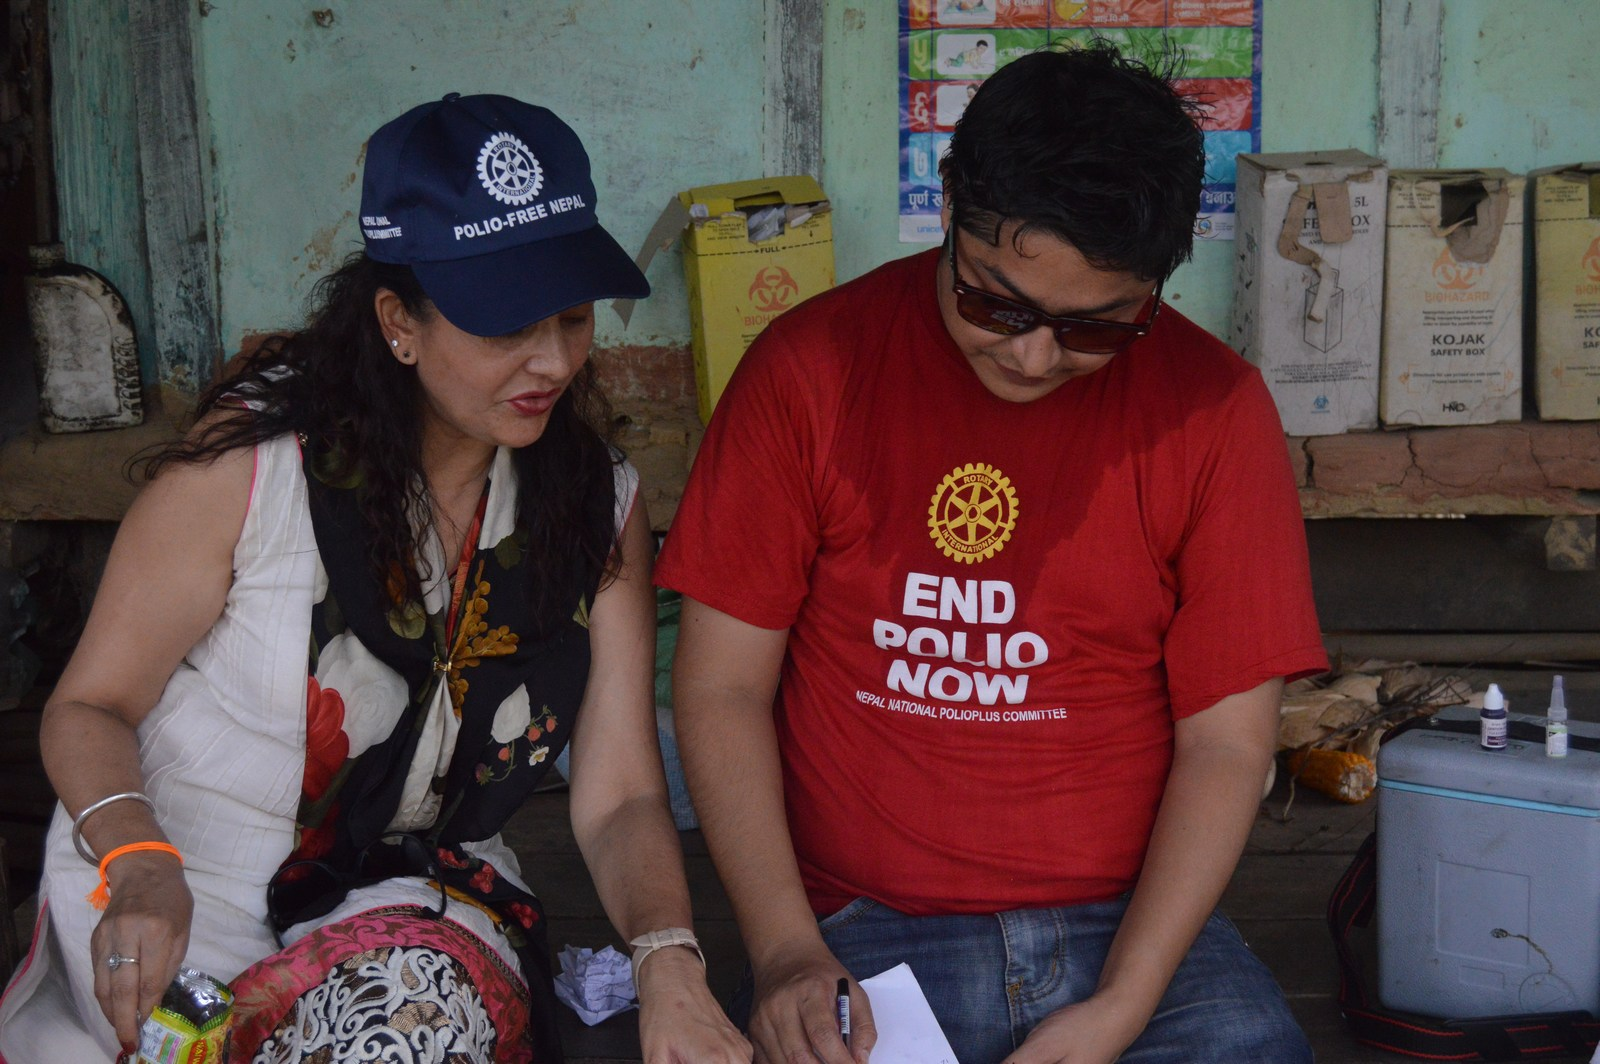 Polio Booth Inspection 40